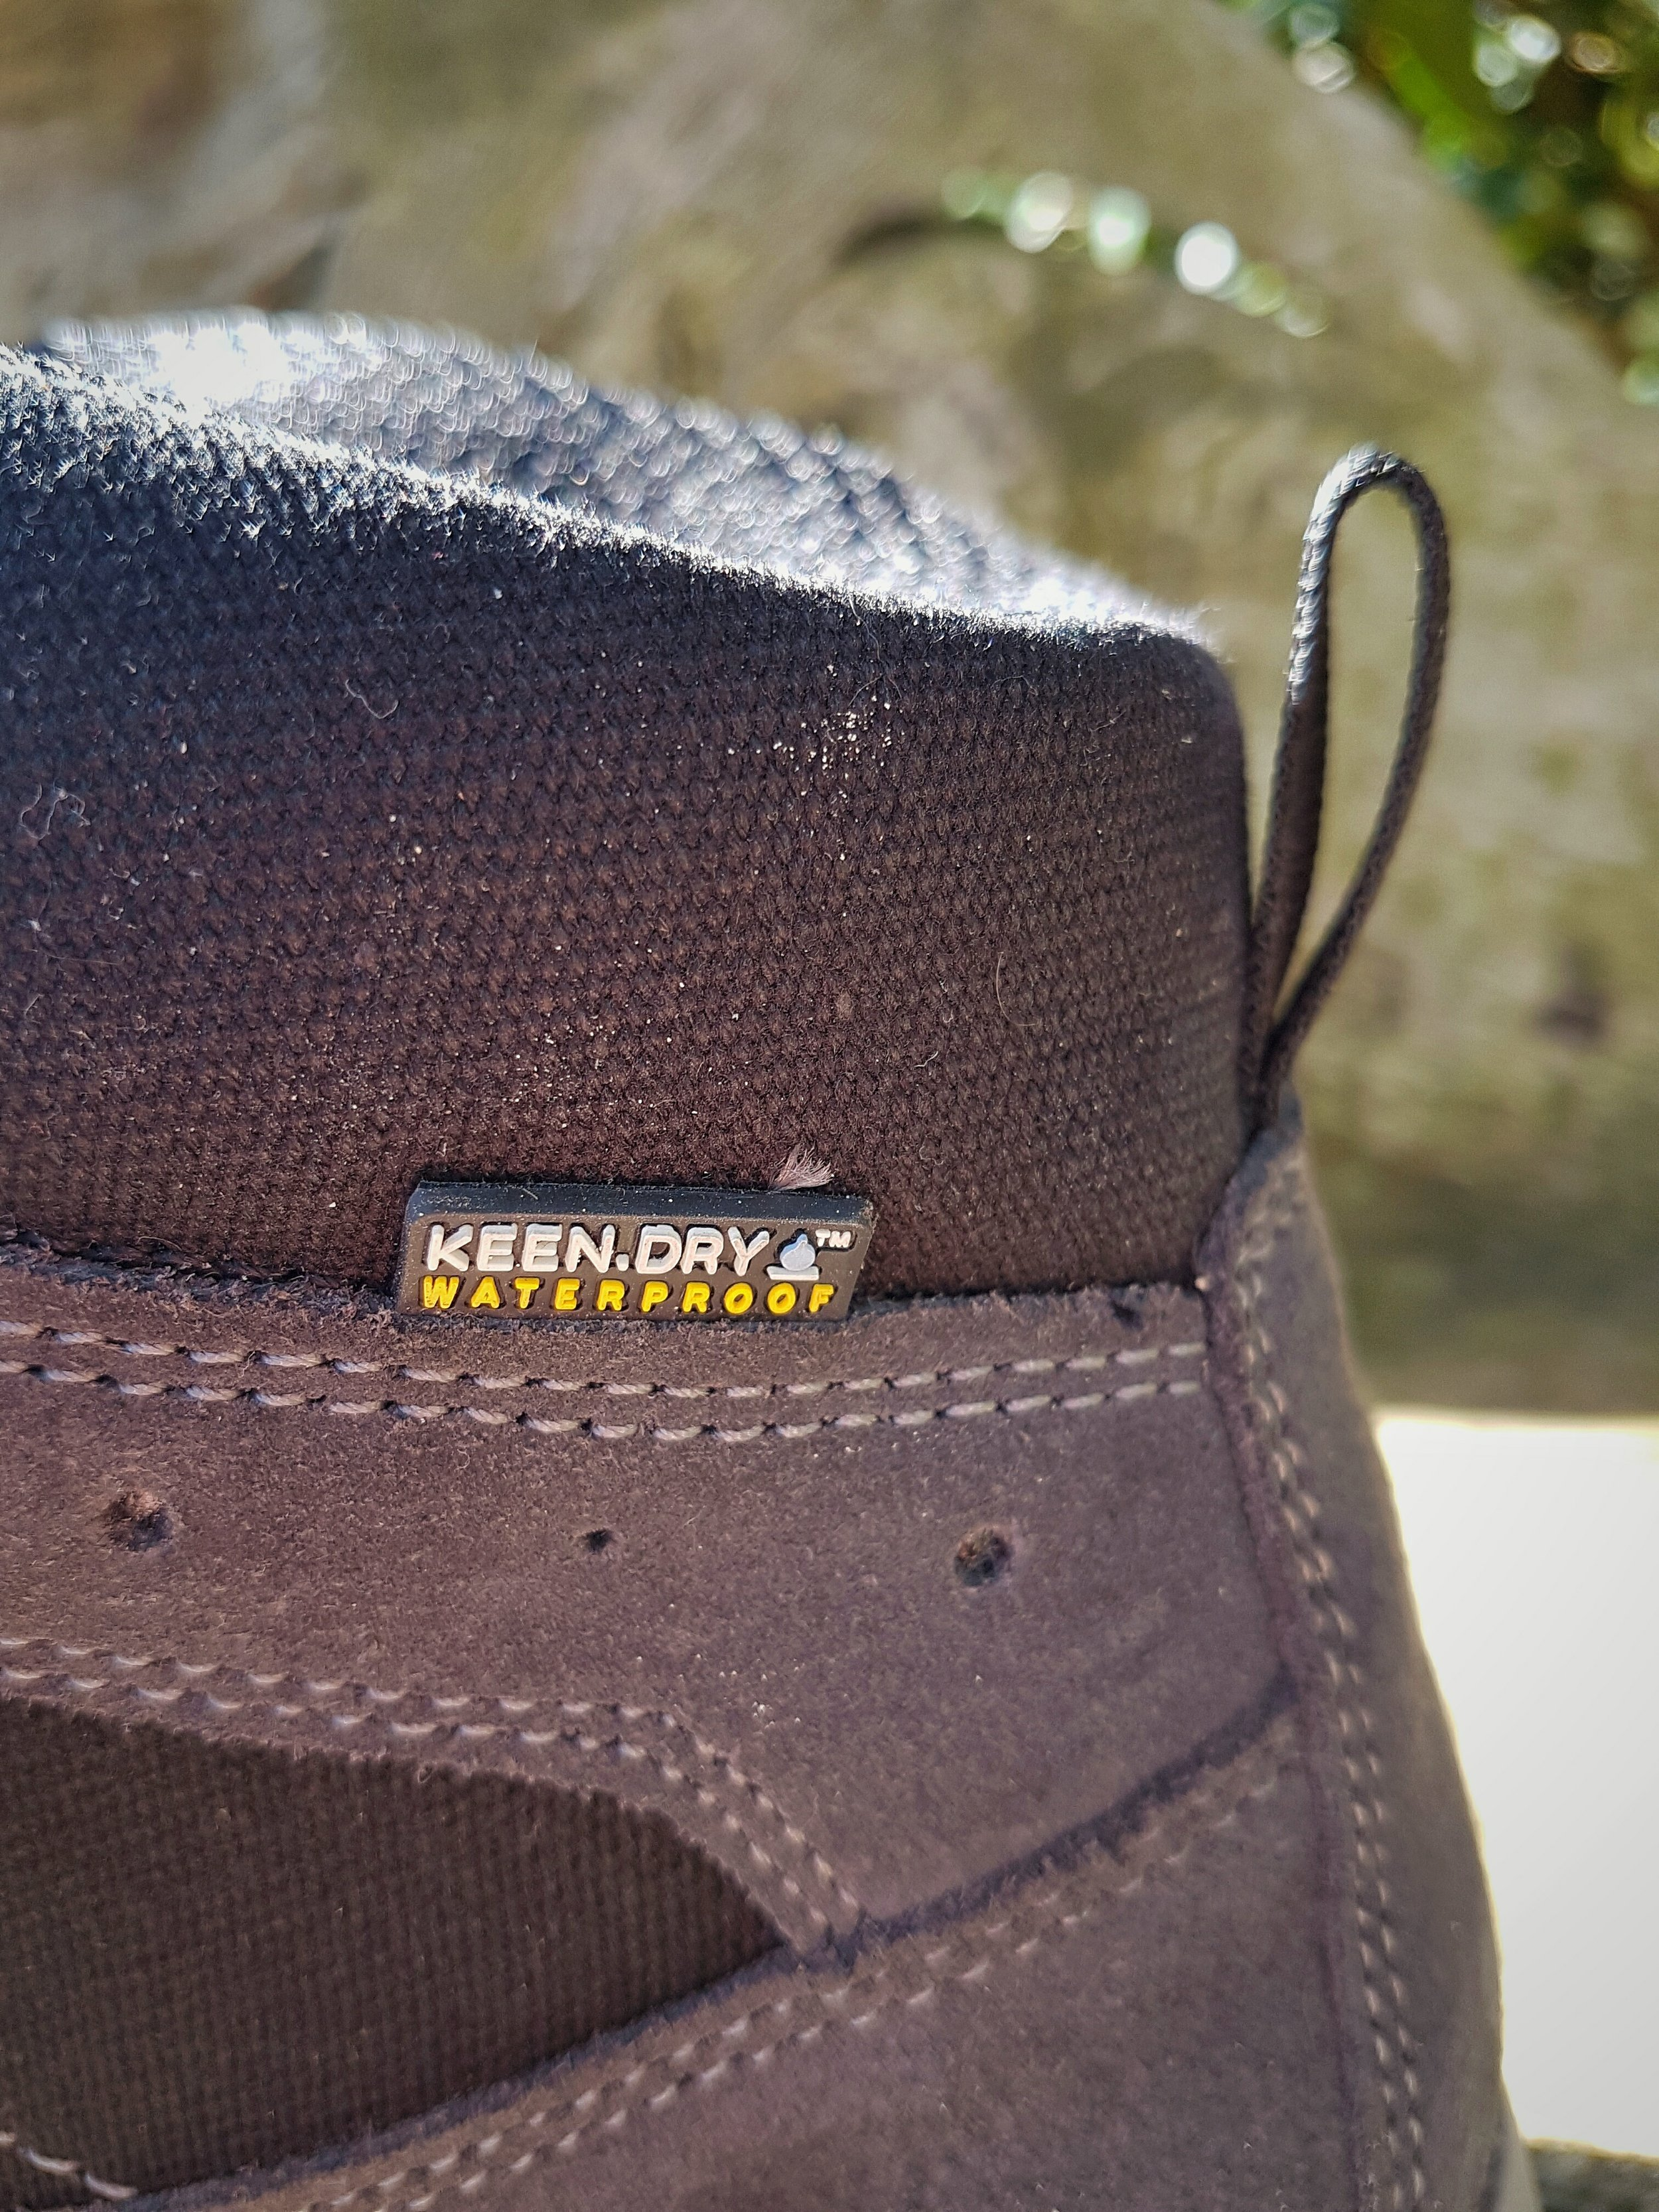 KEEN Waterproofing is clearly visible on the outside of the boot, close to the heel area. The materials on the outer part of the boot are robust mesh and canvas.